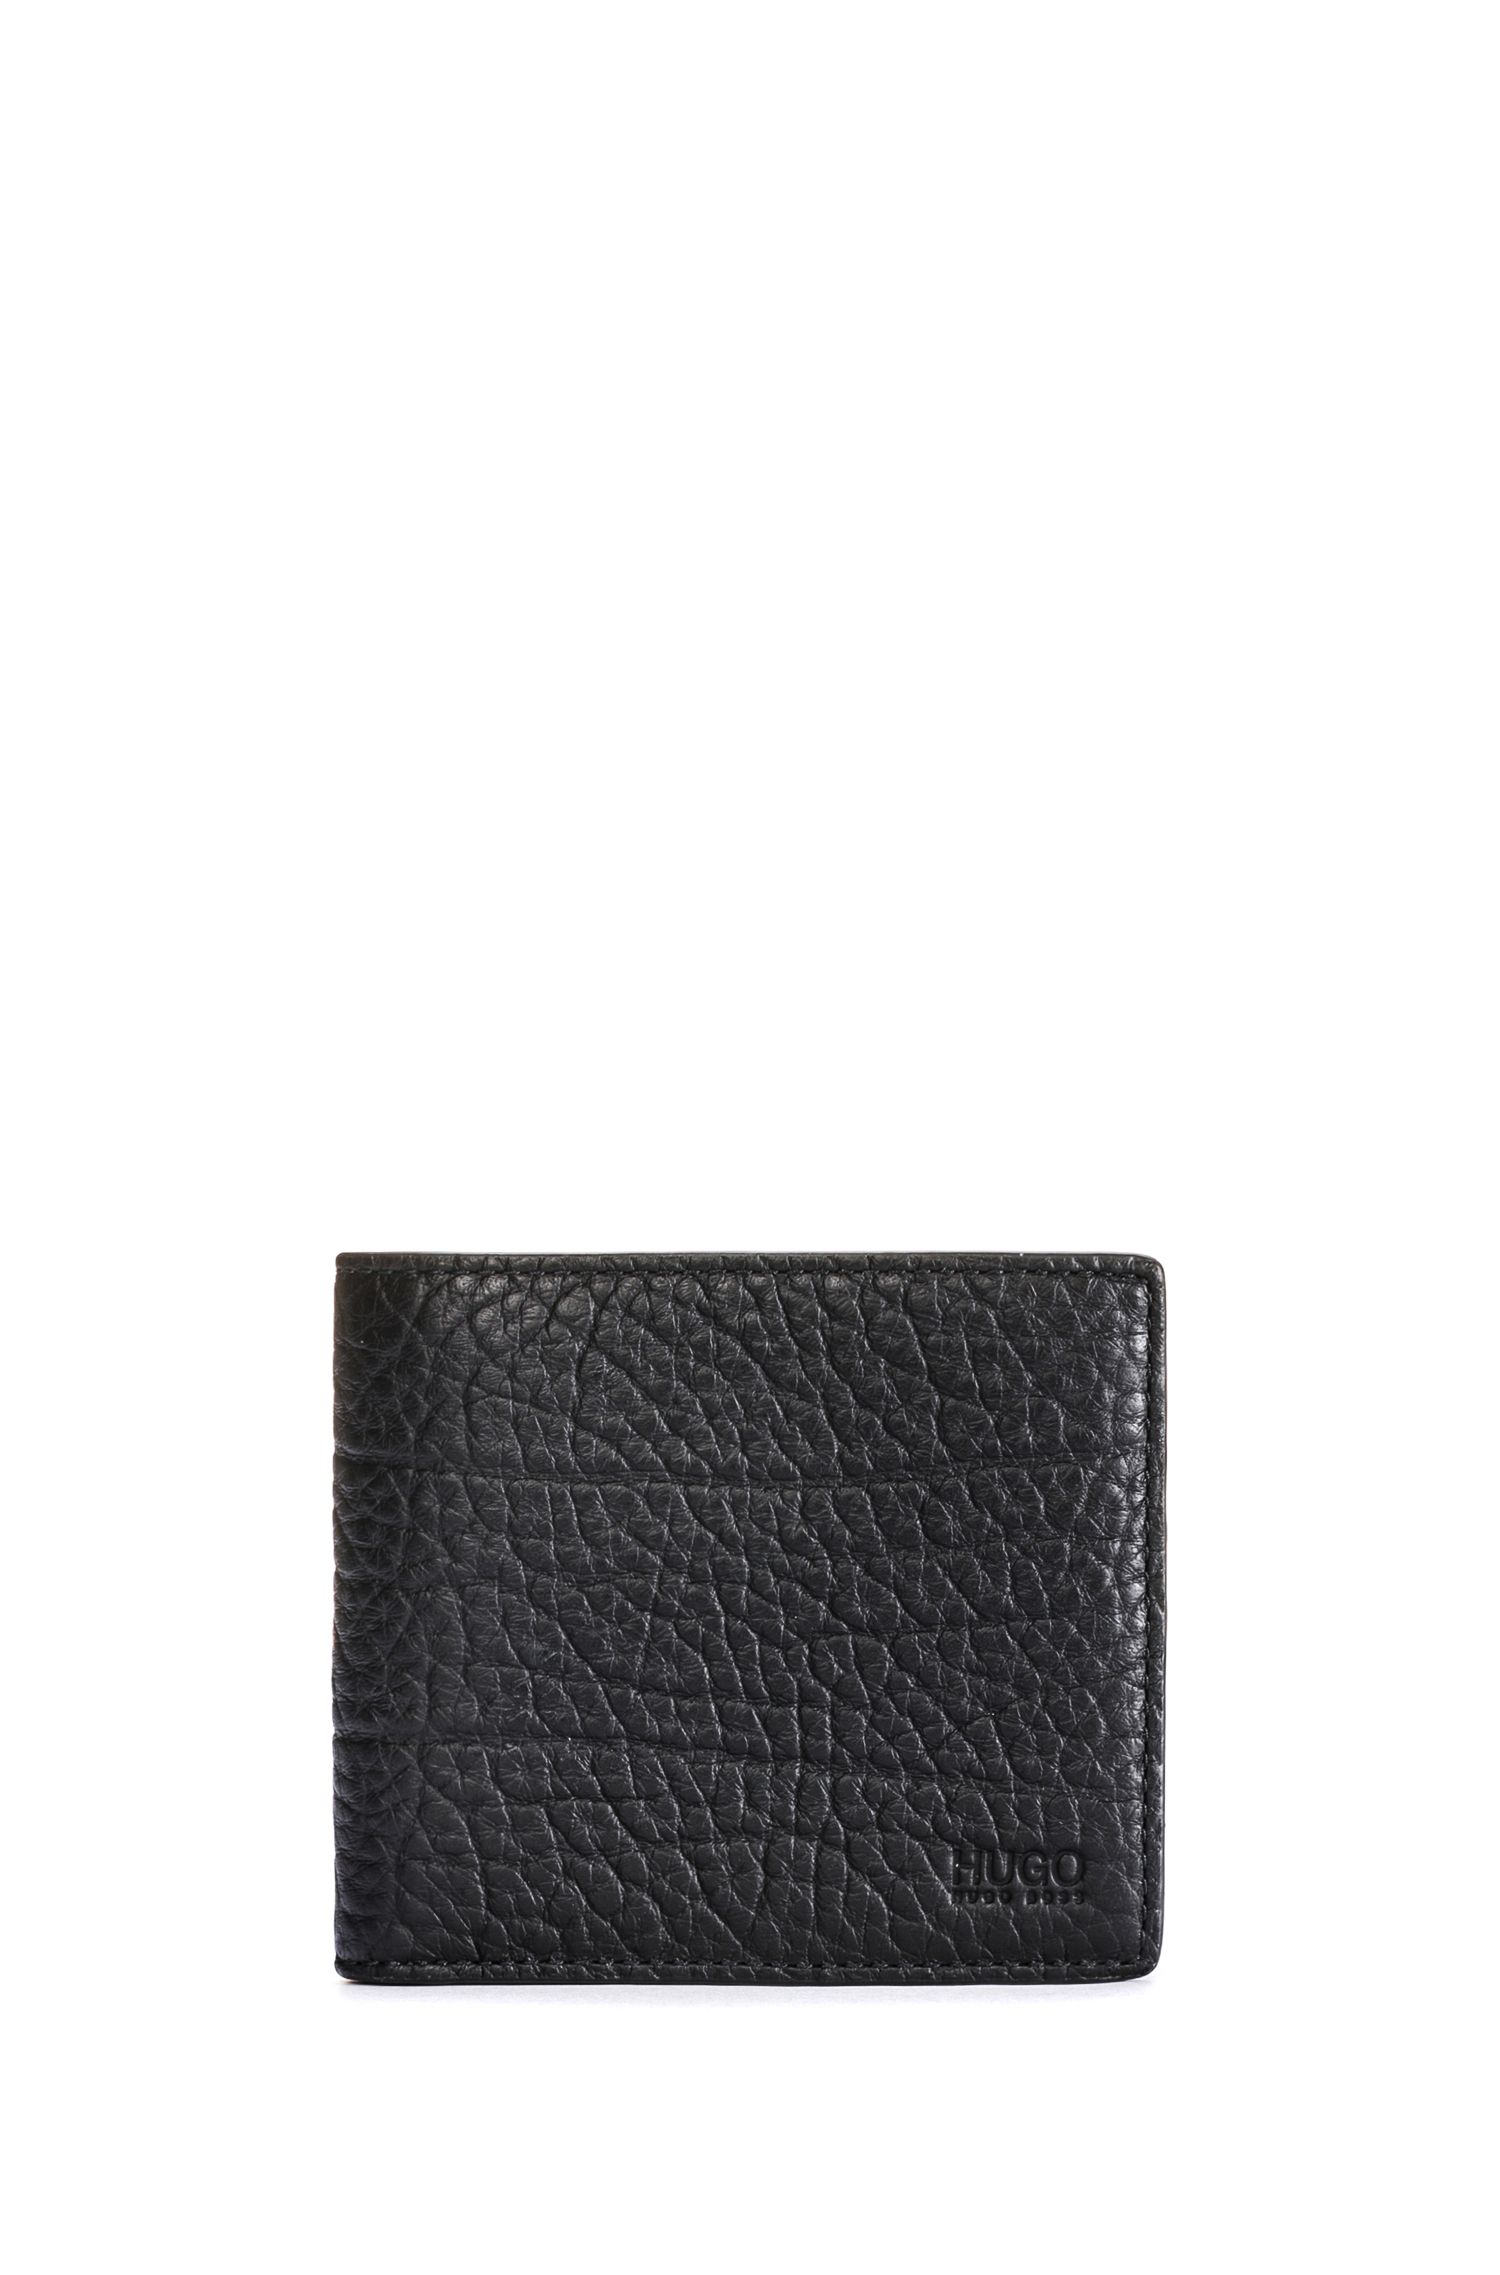 Grained leather bifold wallet with eight card slots